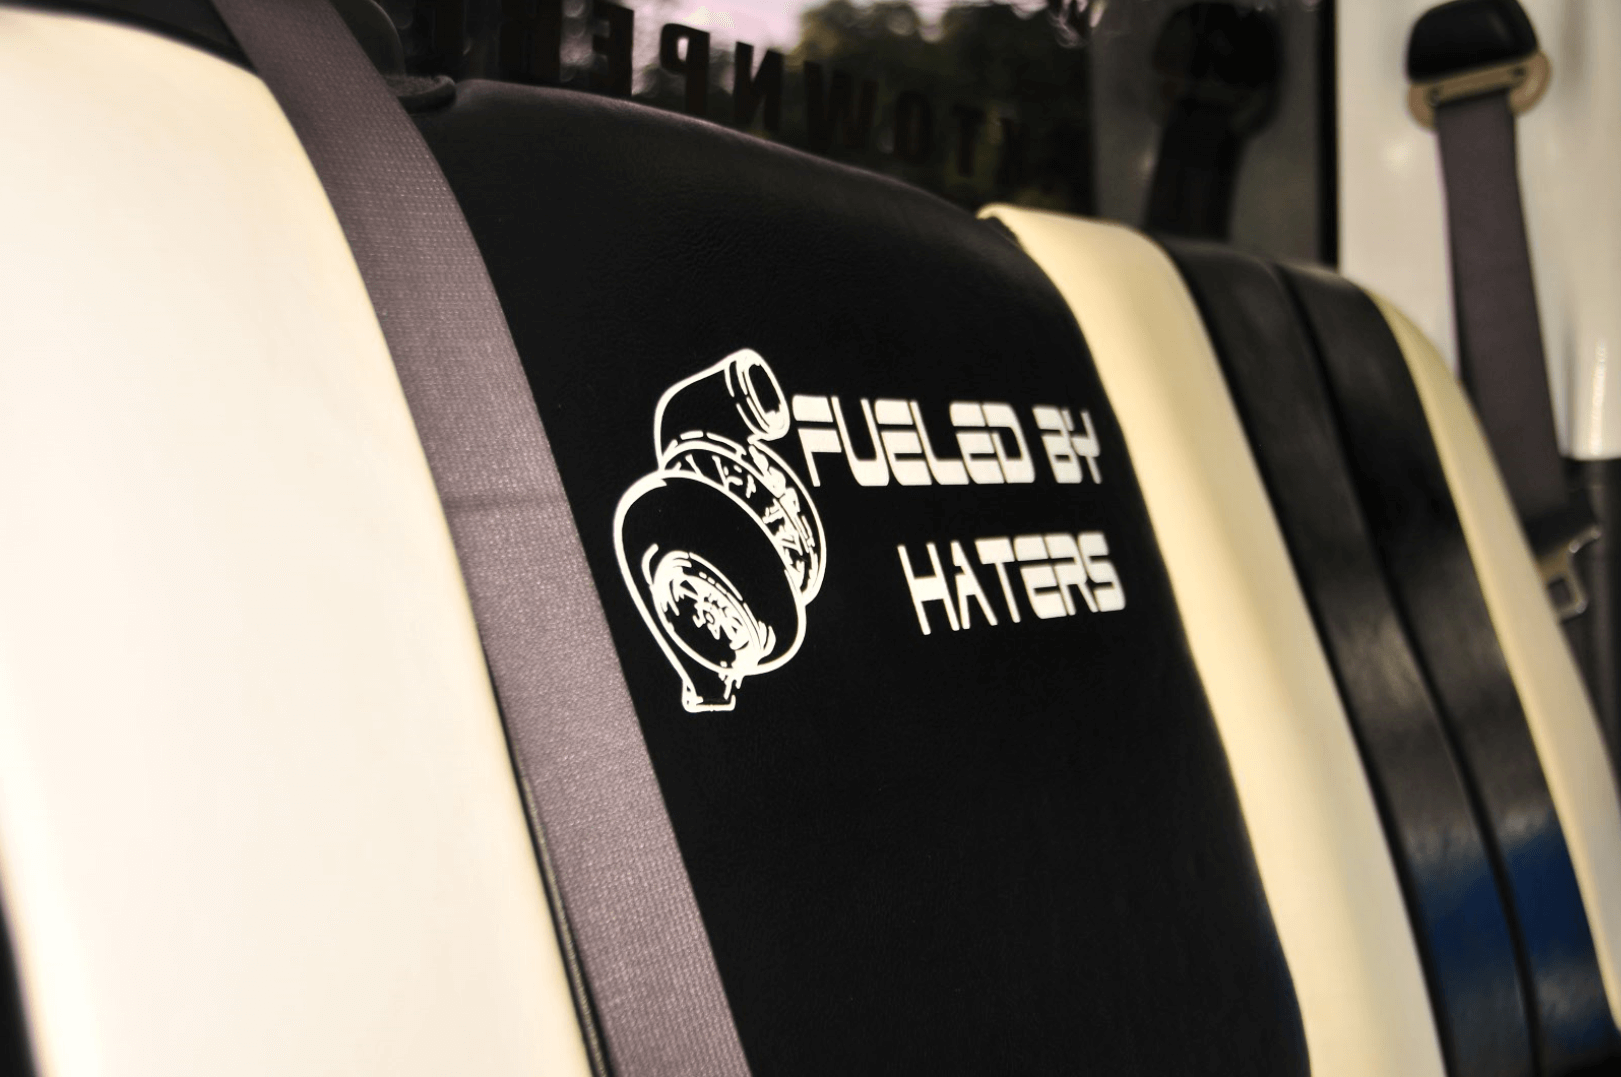 There were plenty who doubted that Jacob could bring his truck back to life. He proved them wrong. He had the seats embroidered in their honor.